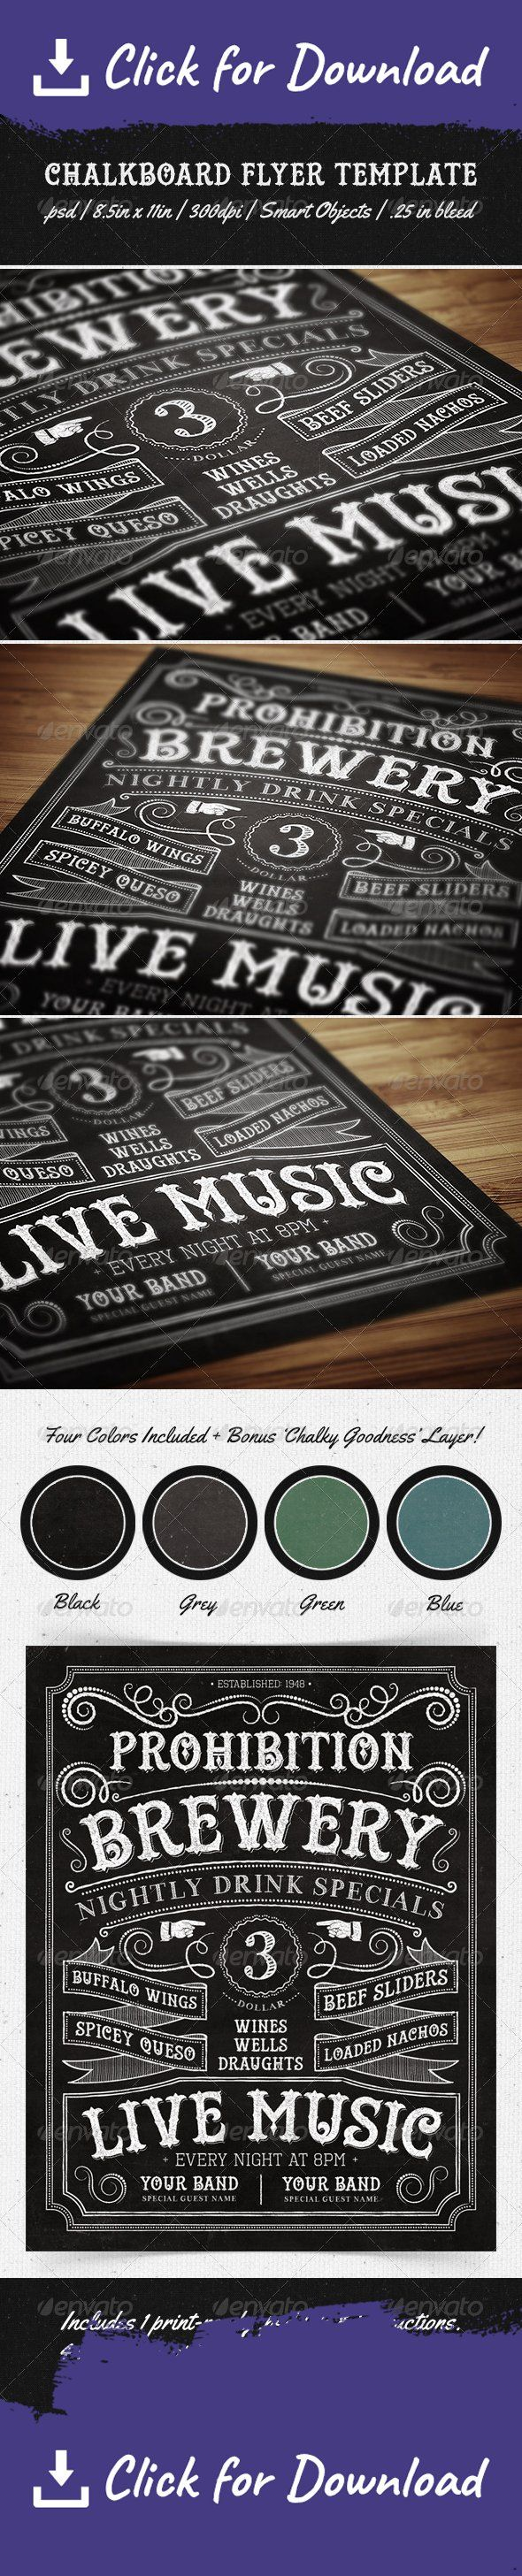 band, banner, bar, beer, black, blackboard, blue, brewery, chalk, chalkboard, club, drink, event, flyer, gray, green, hand drawn, illustrated, music, ornaments, party, promo, promotion, restaurant, specials, template, vintage, wedding Use this hand-illustrated, 8.5in X 11in chalkboard flyer template to promote your bar, brewery, restaurant, band, barbecue, etc. You can even use this as a unique wedding invitation or greeting card. The possibilities are endless!   This Photoshop file has…